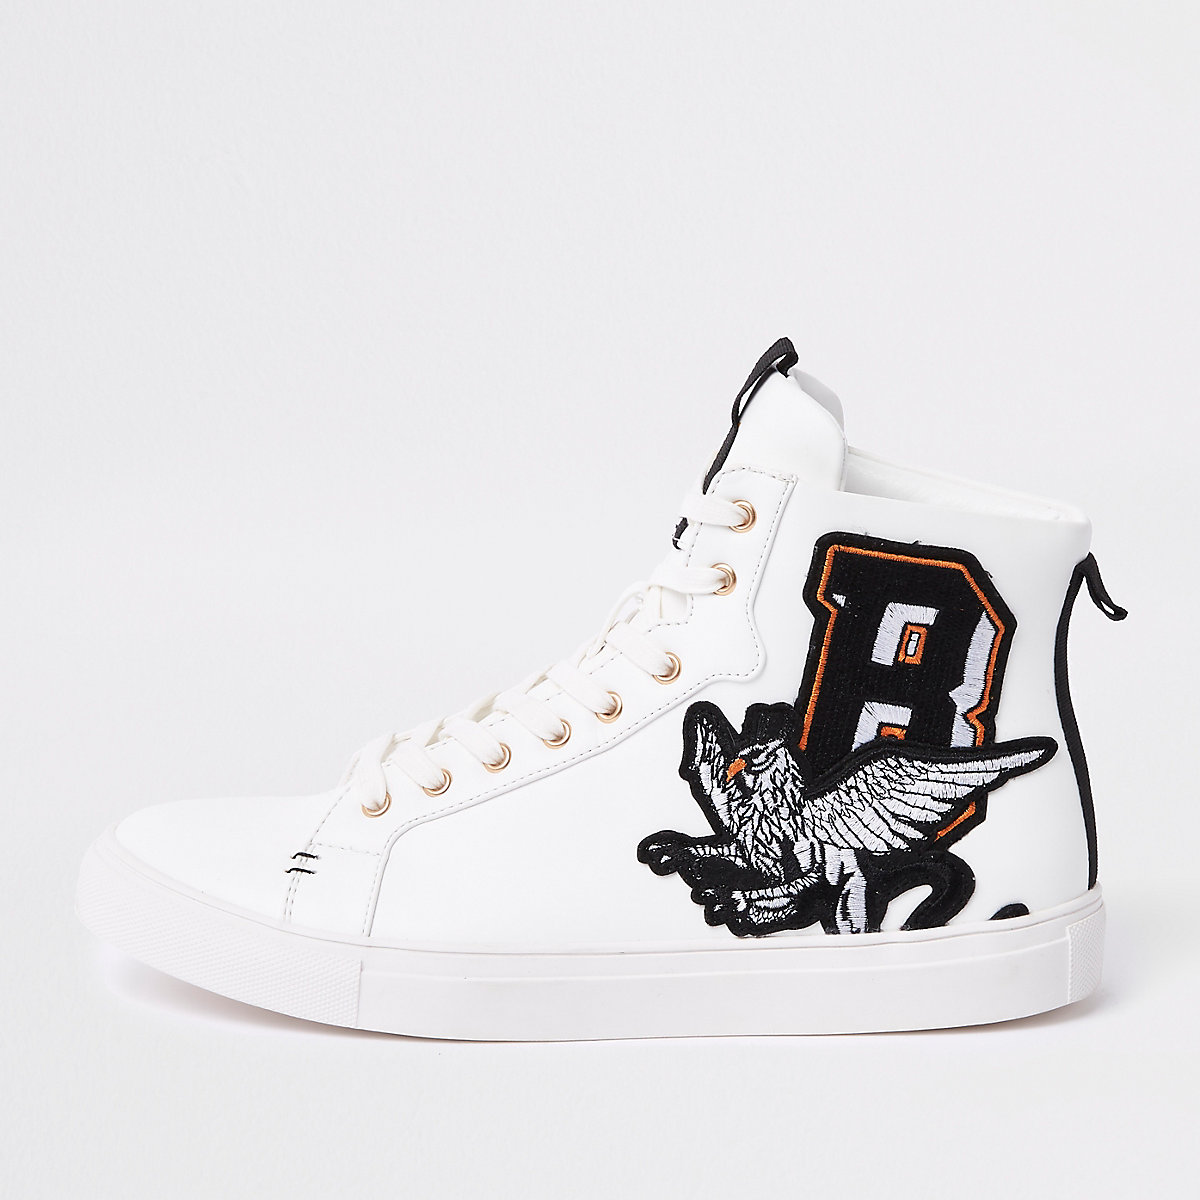 White embroidered high top sneakers